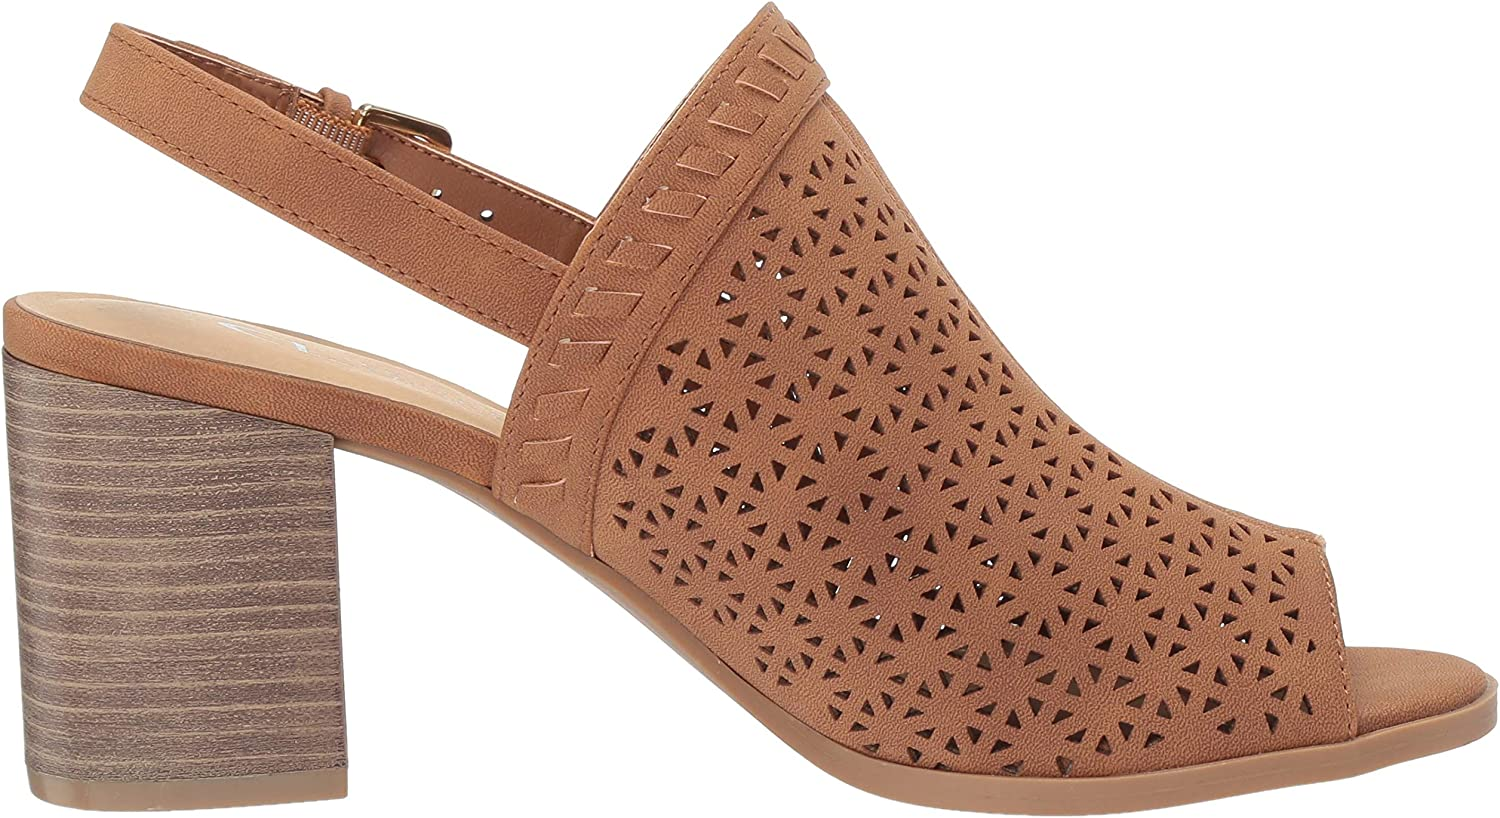 CL by Chinese Laundry Womens Jewelled Heeled Sandal